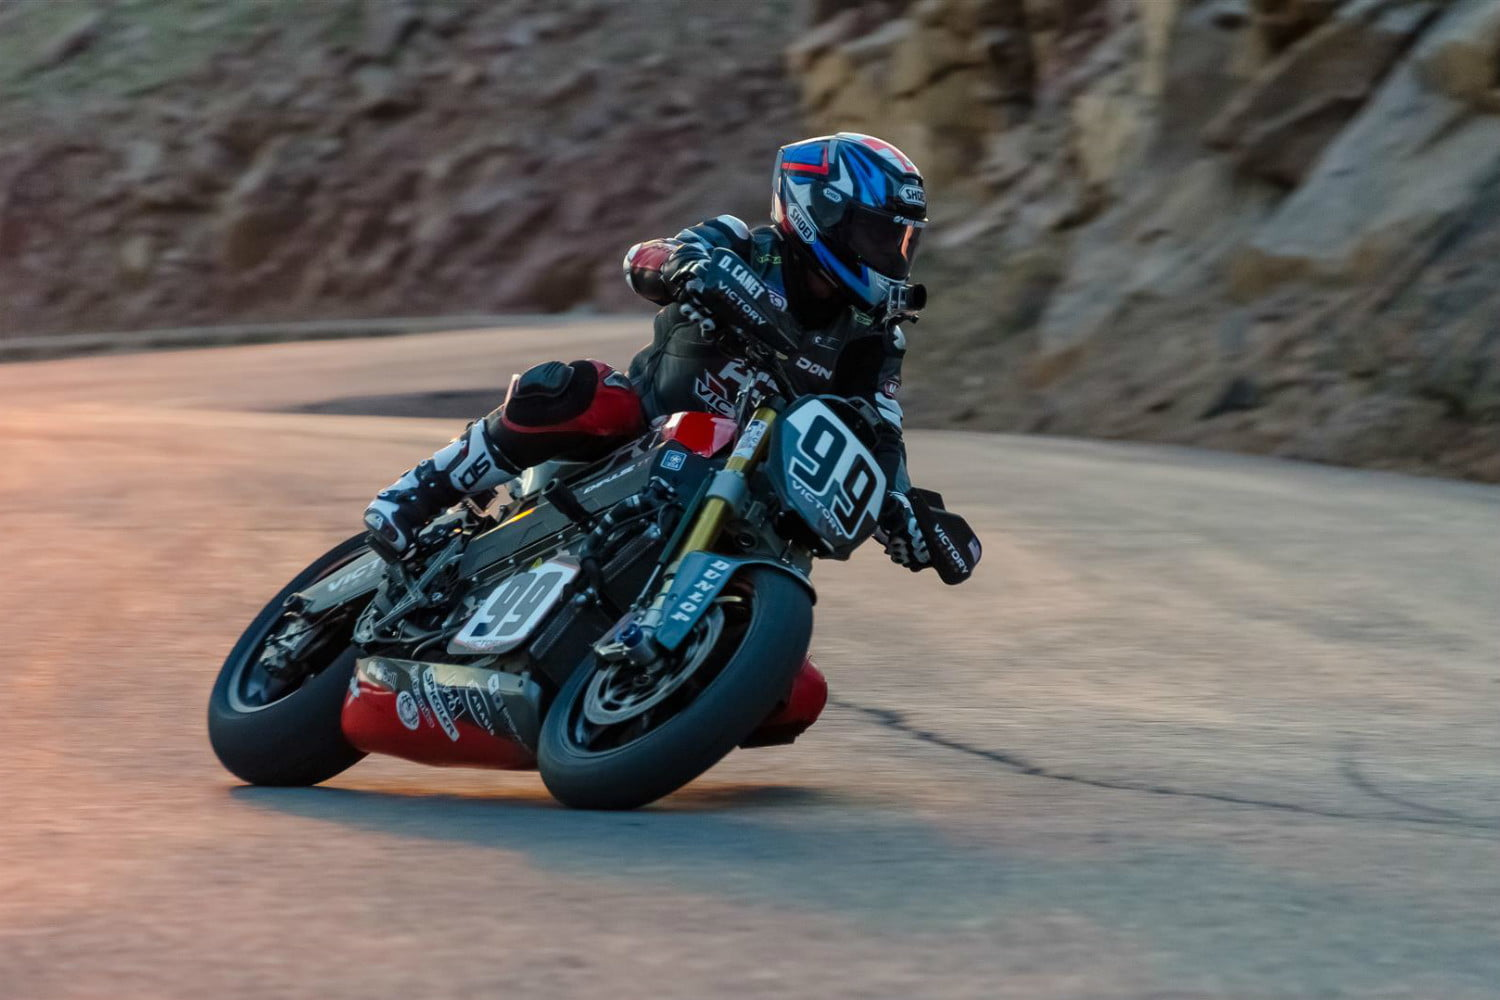 victory motorcycles empulse rr takes first at pikes peak ppihc